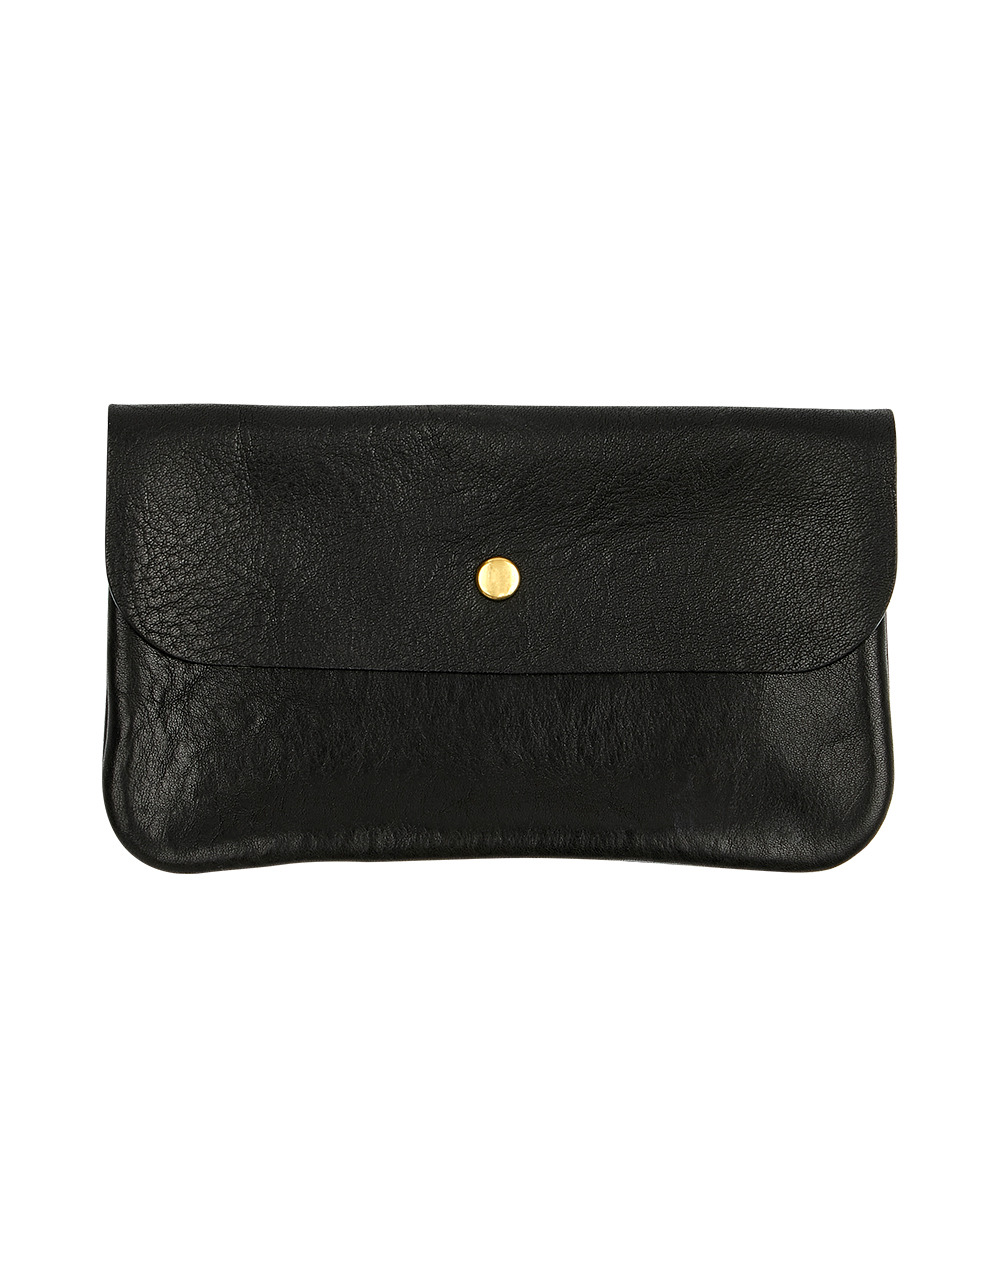 DURAM FACTORY FLAP POUCH (L)  BLACK